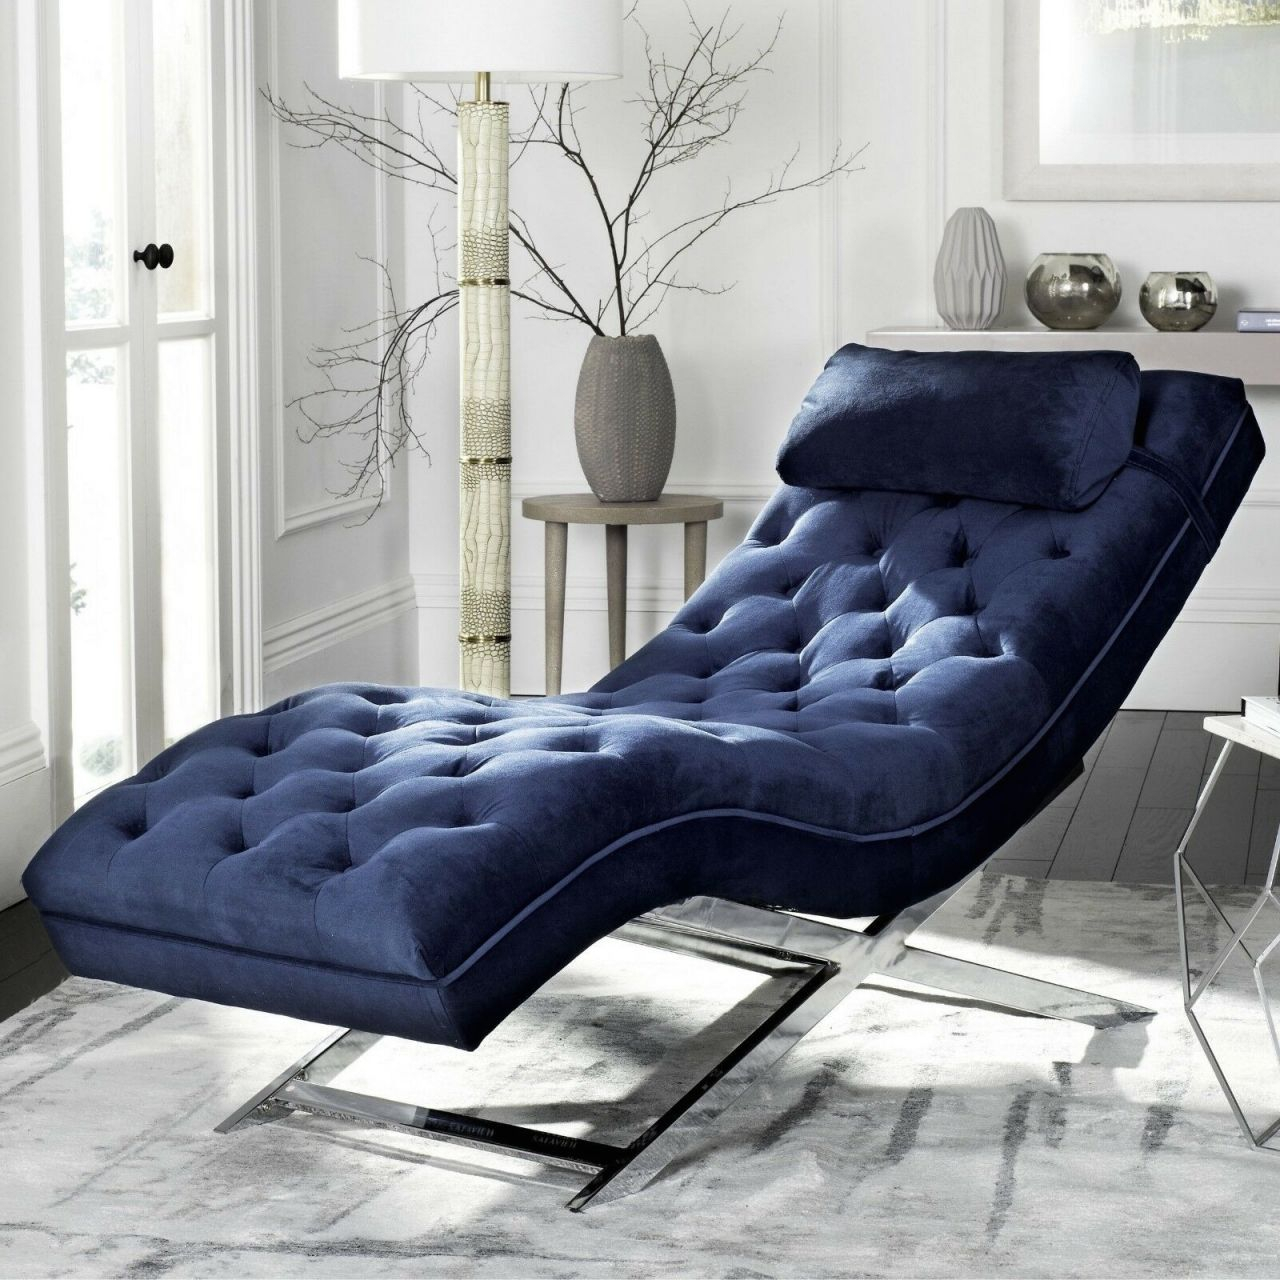 Chaise Lounge Chair Tufted Blue Velvet Chrome Base Modern Living Room Furniture in Unique Lounge Chair Living Room Furniture